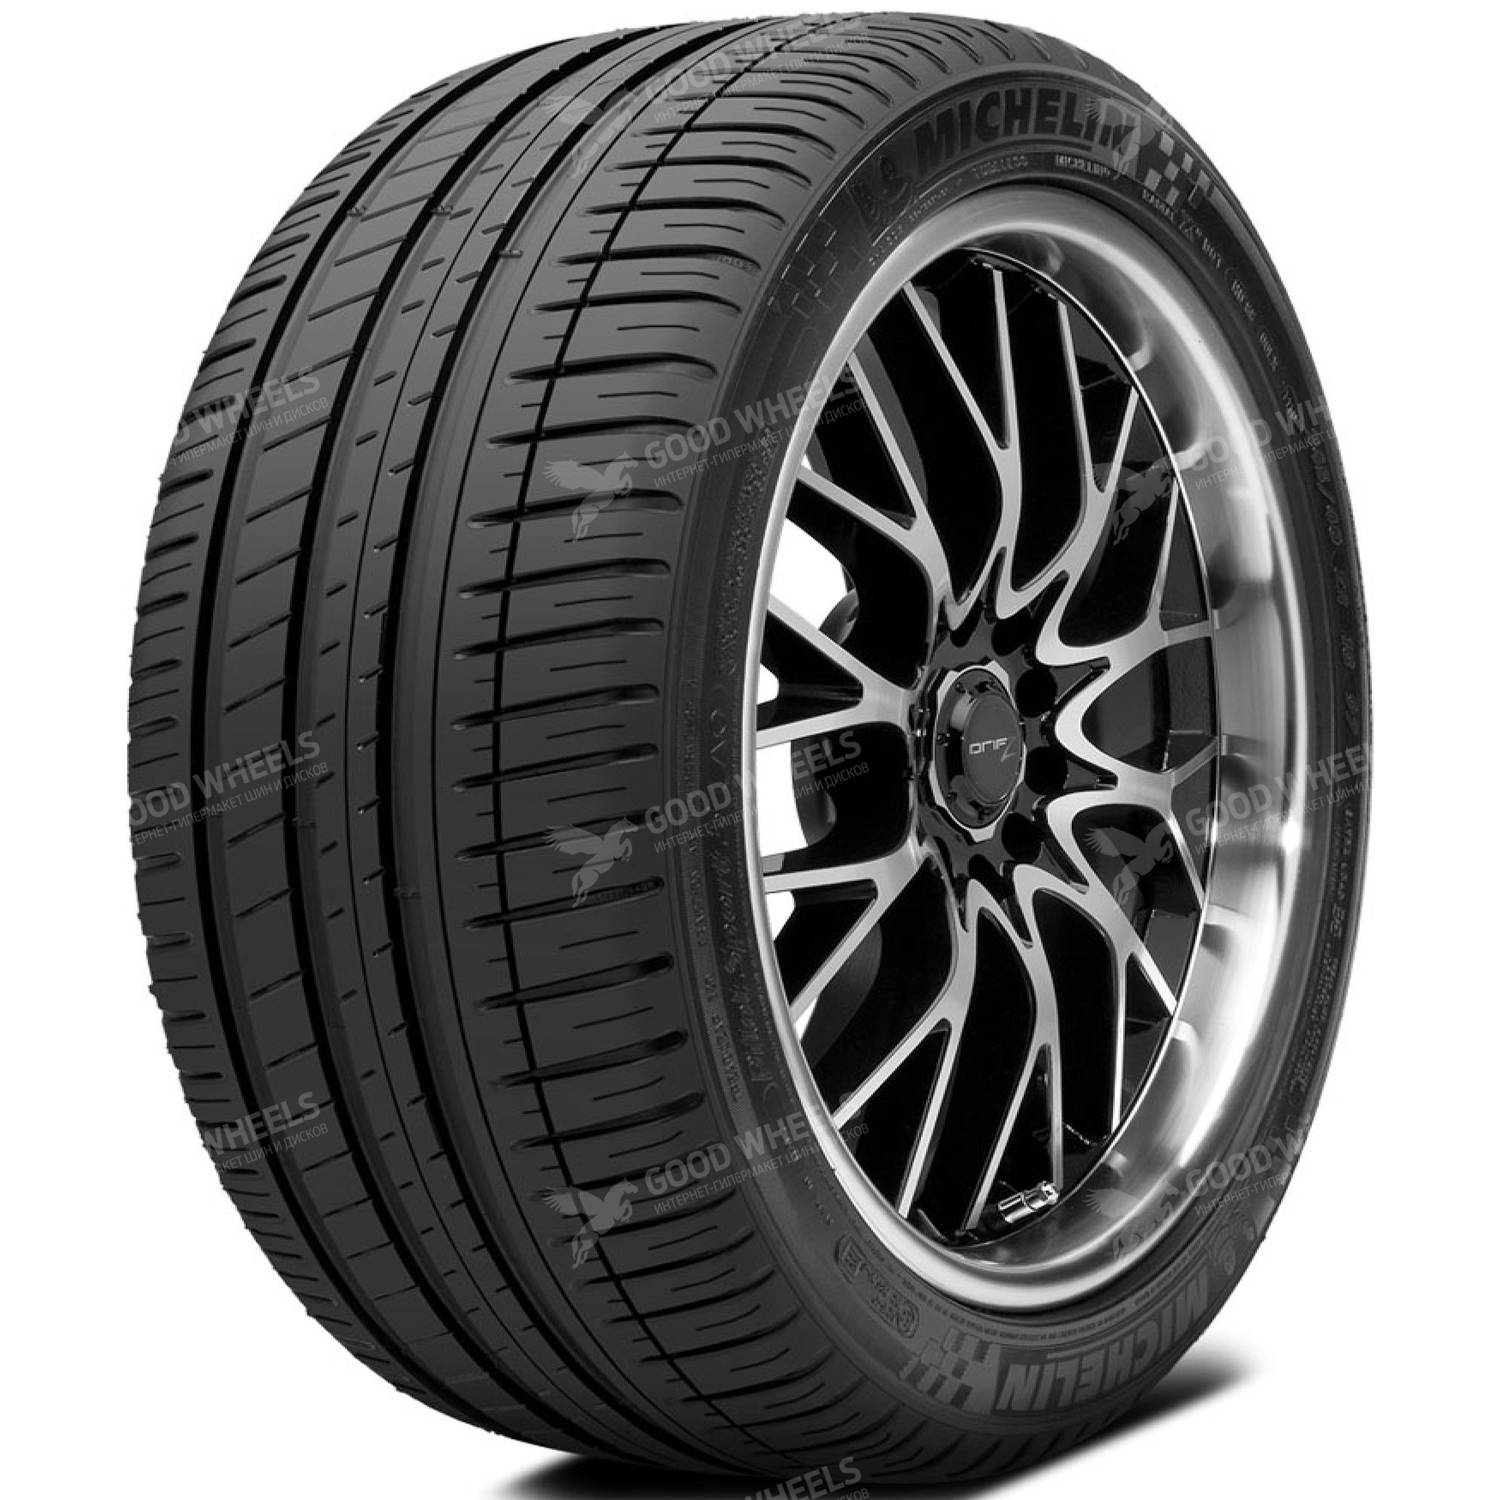 Michelin Pilot Sport 3 (PS3) 255/35 R18 94Y